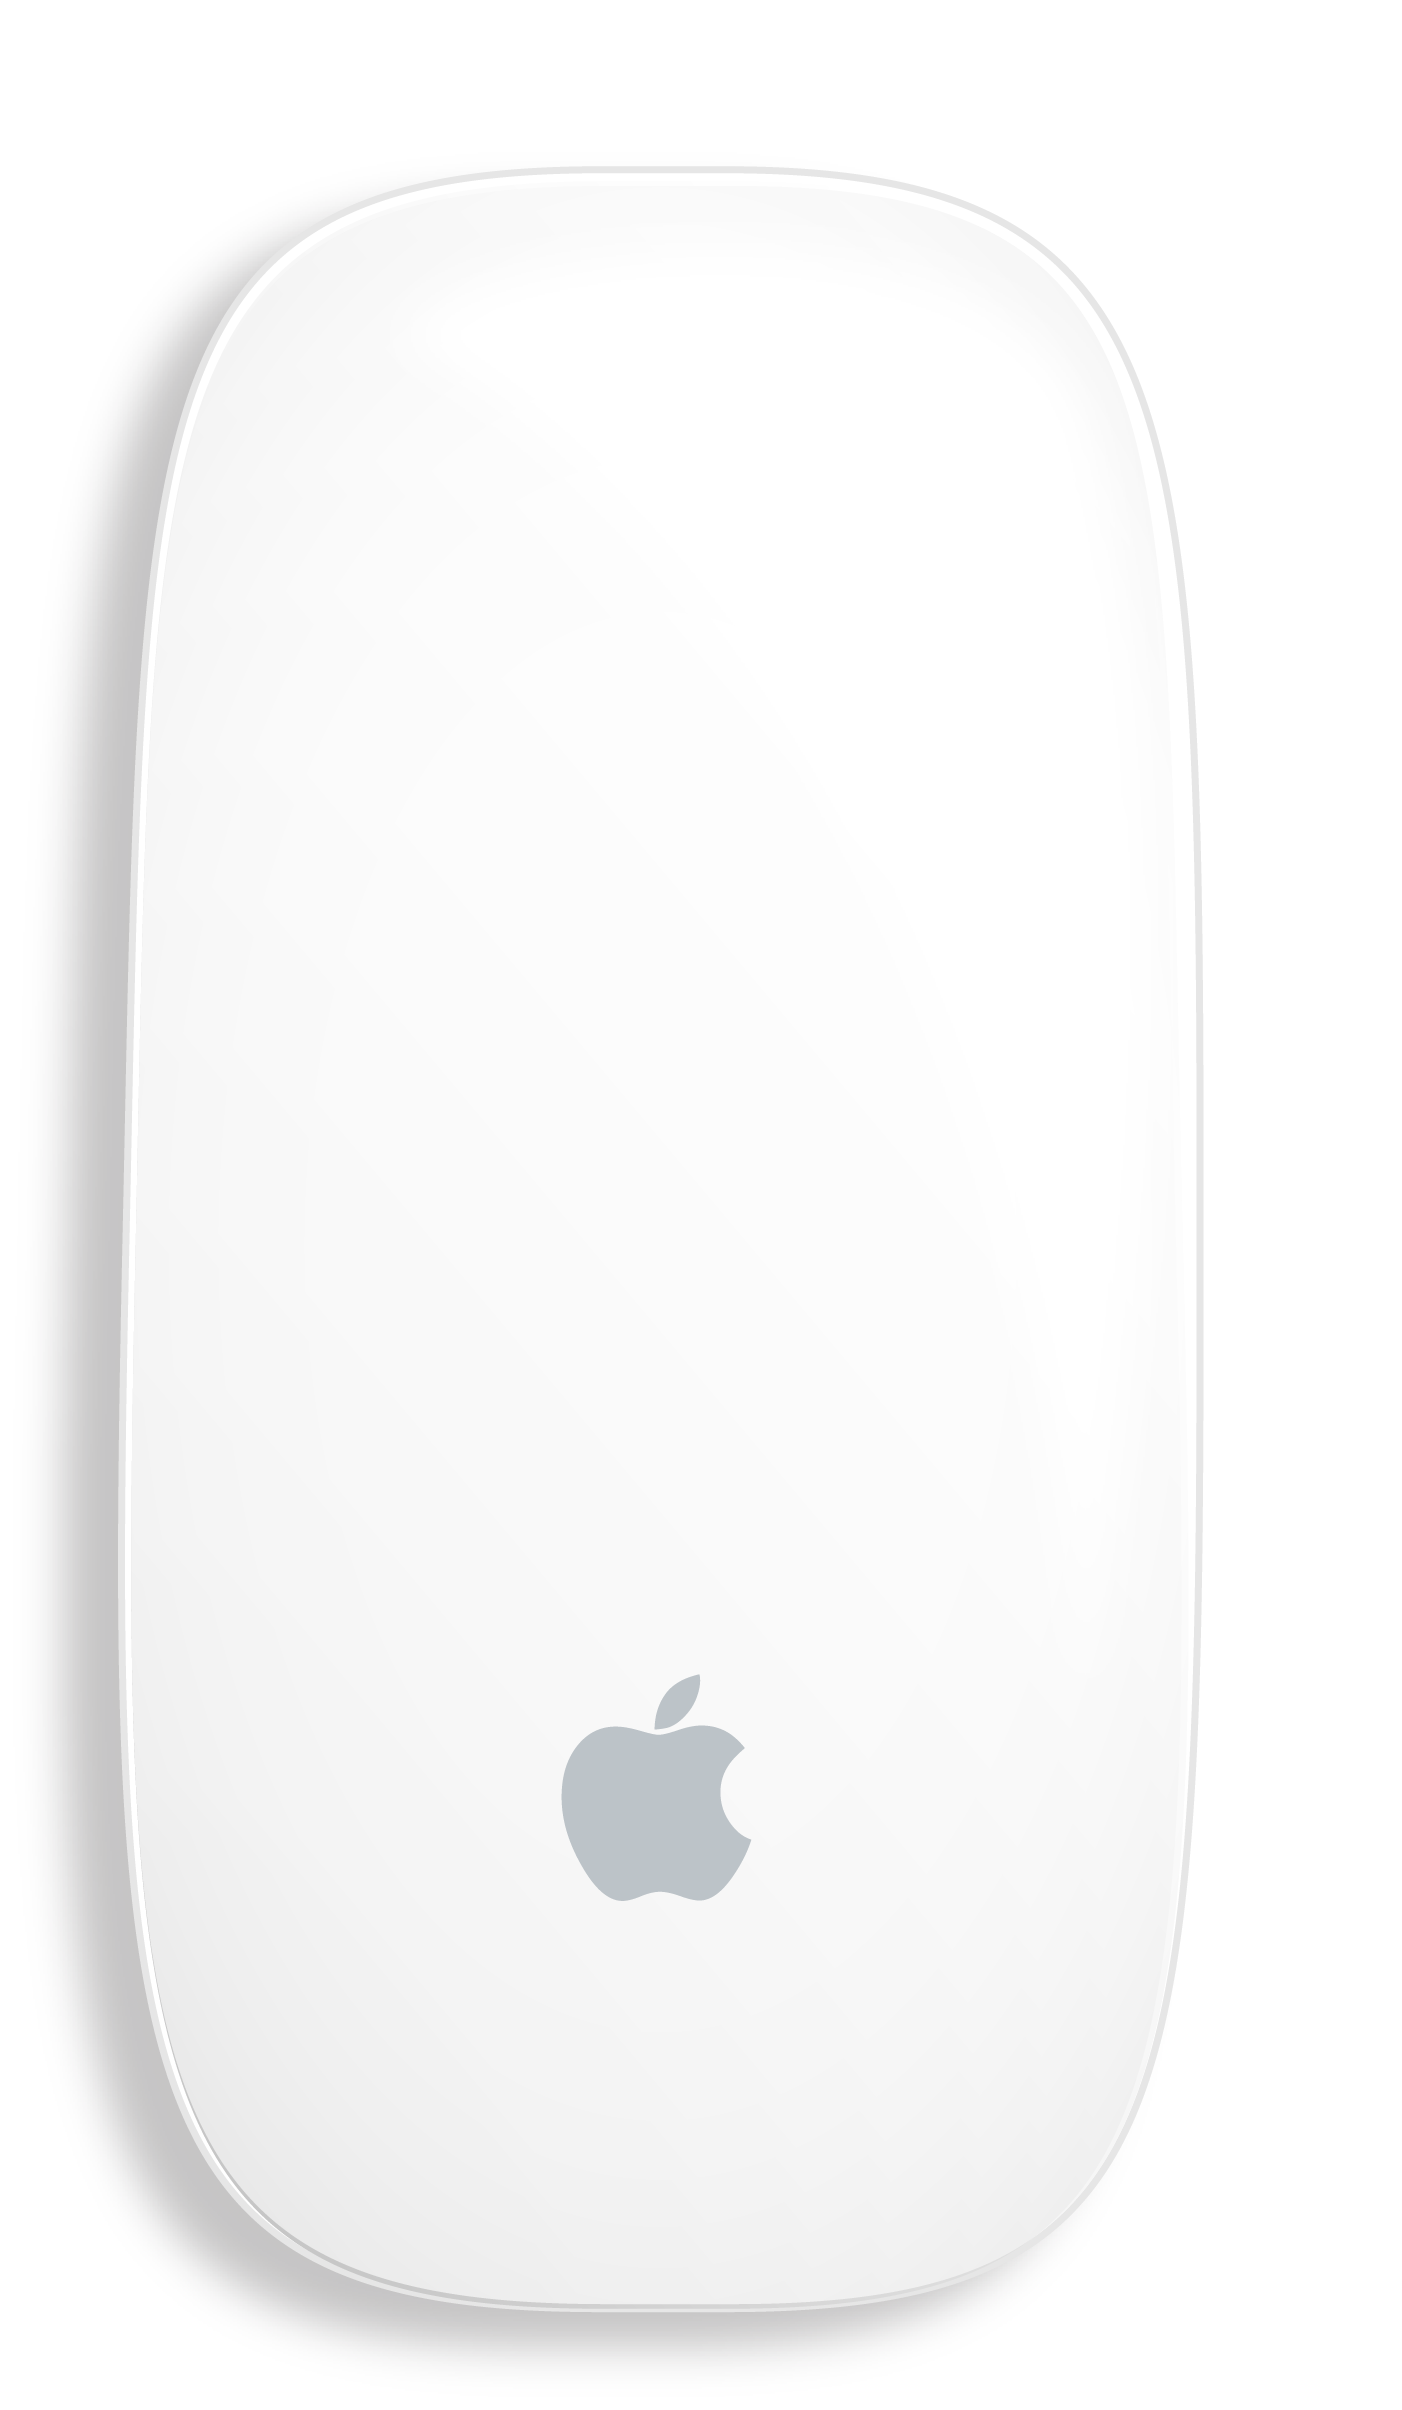 Mouse clipart wireless mouse. First apple collection mac